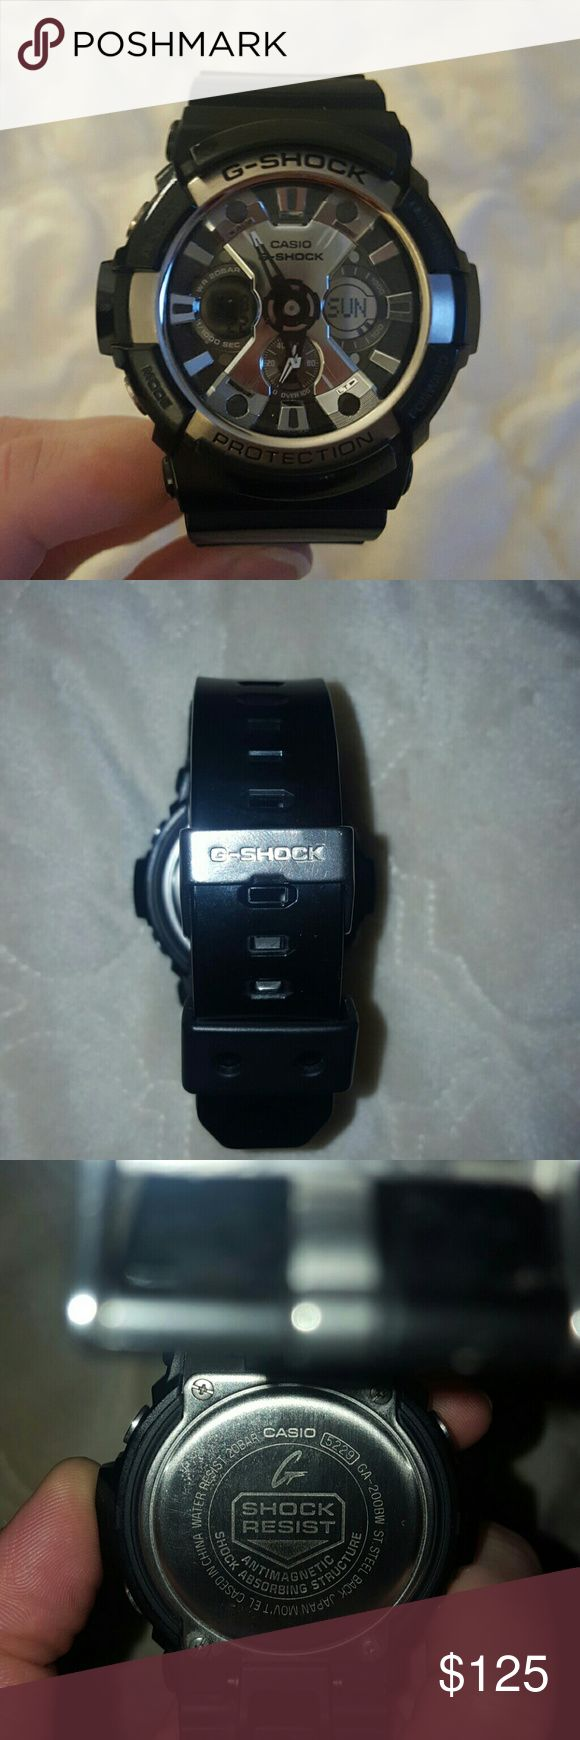 G-Shock Men's Watch (Black) Men's G-Shock Watch (black) A rough and rugged watch from G-Shock that is anything but basic. Featuring a mechanical dial with analog and digital capabilities and a black strap with a buckle closure. Case size: 52mm Water resistant to 200m Imported  Minimal wear-- just like new!  **Will be shipped in original case and box with user's guide and international warranty card included!**  All reasonable offers will be considered! G-Shock Accessories Watches